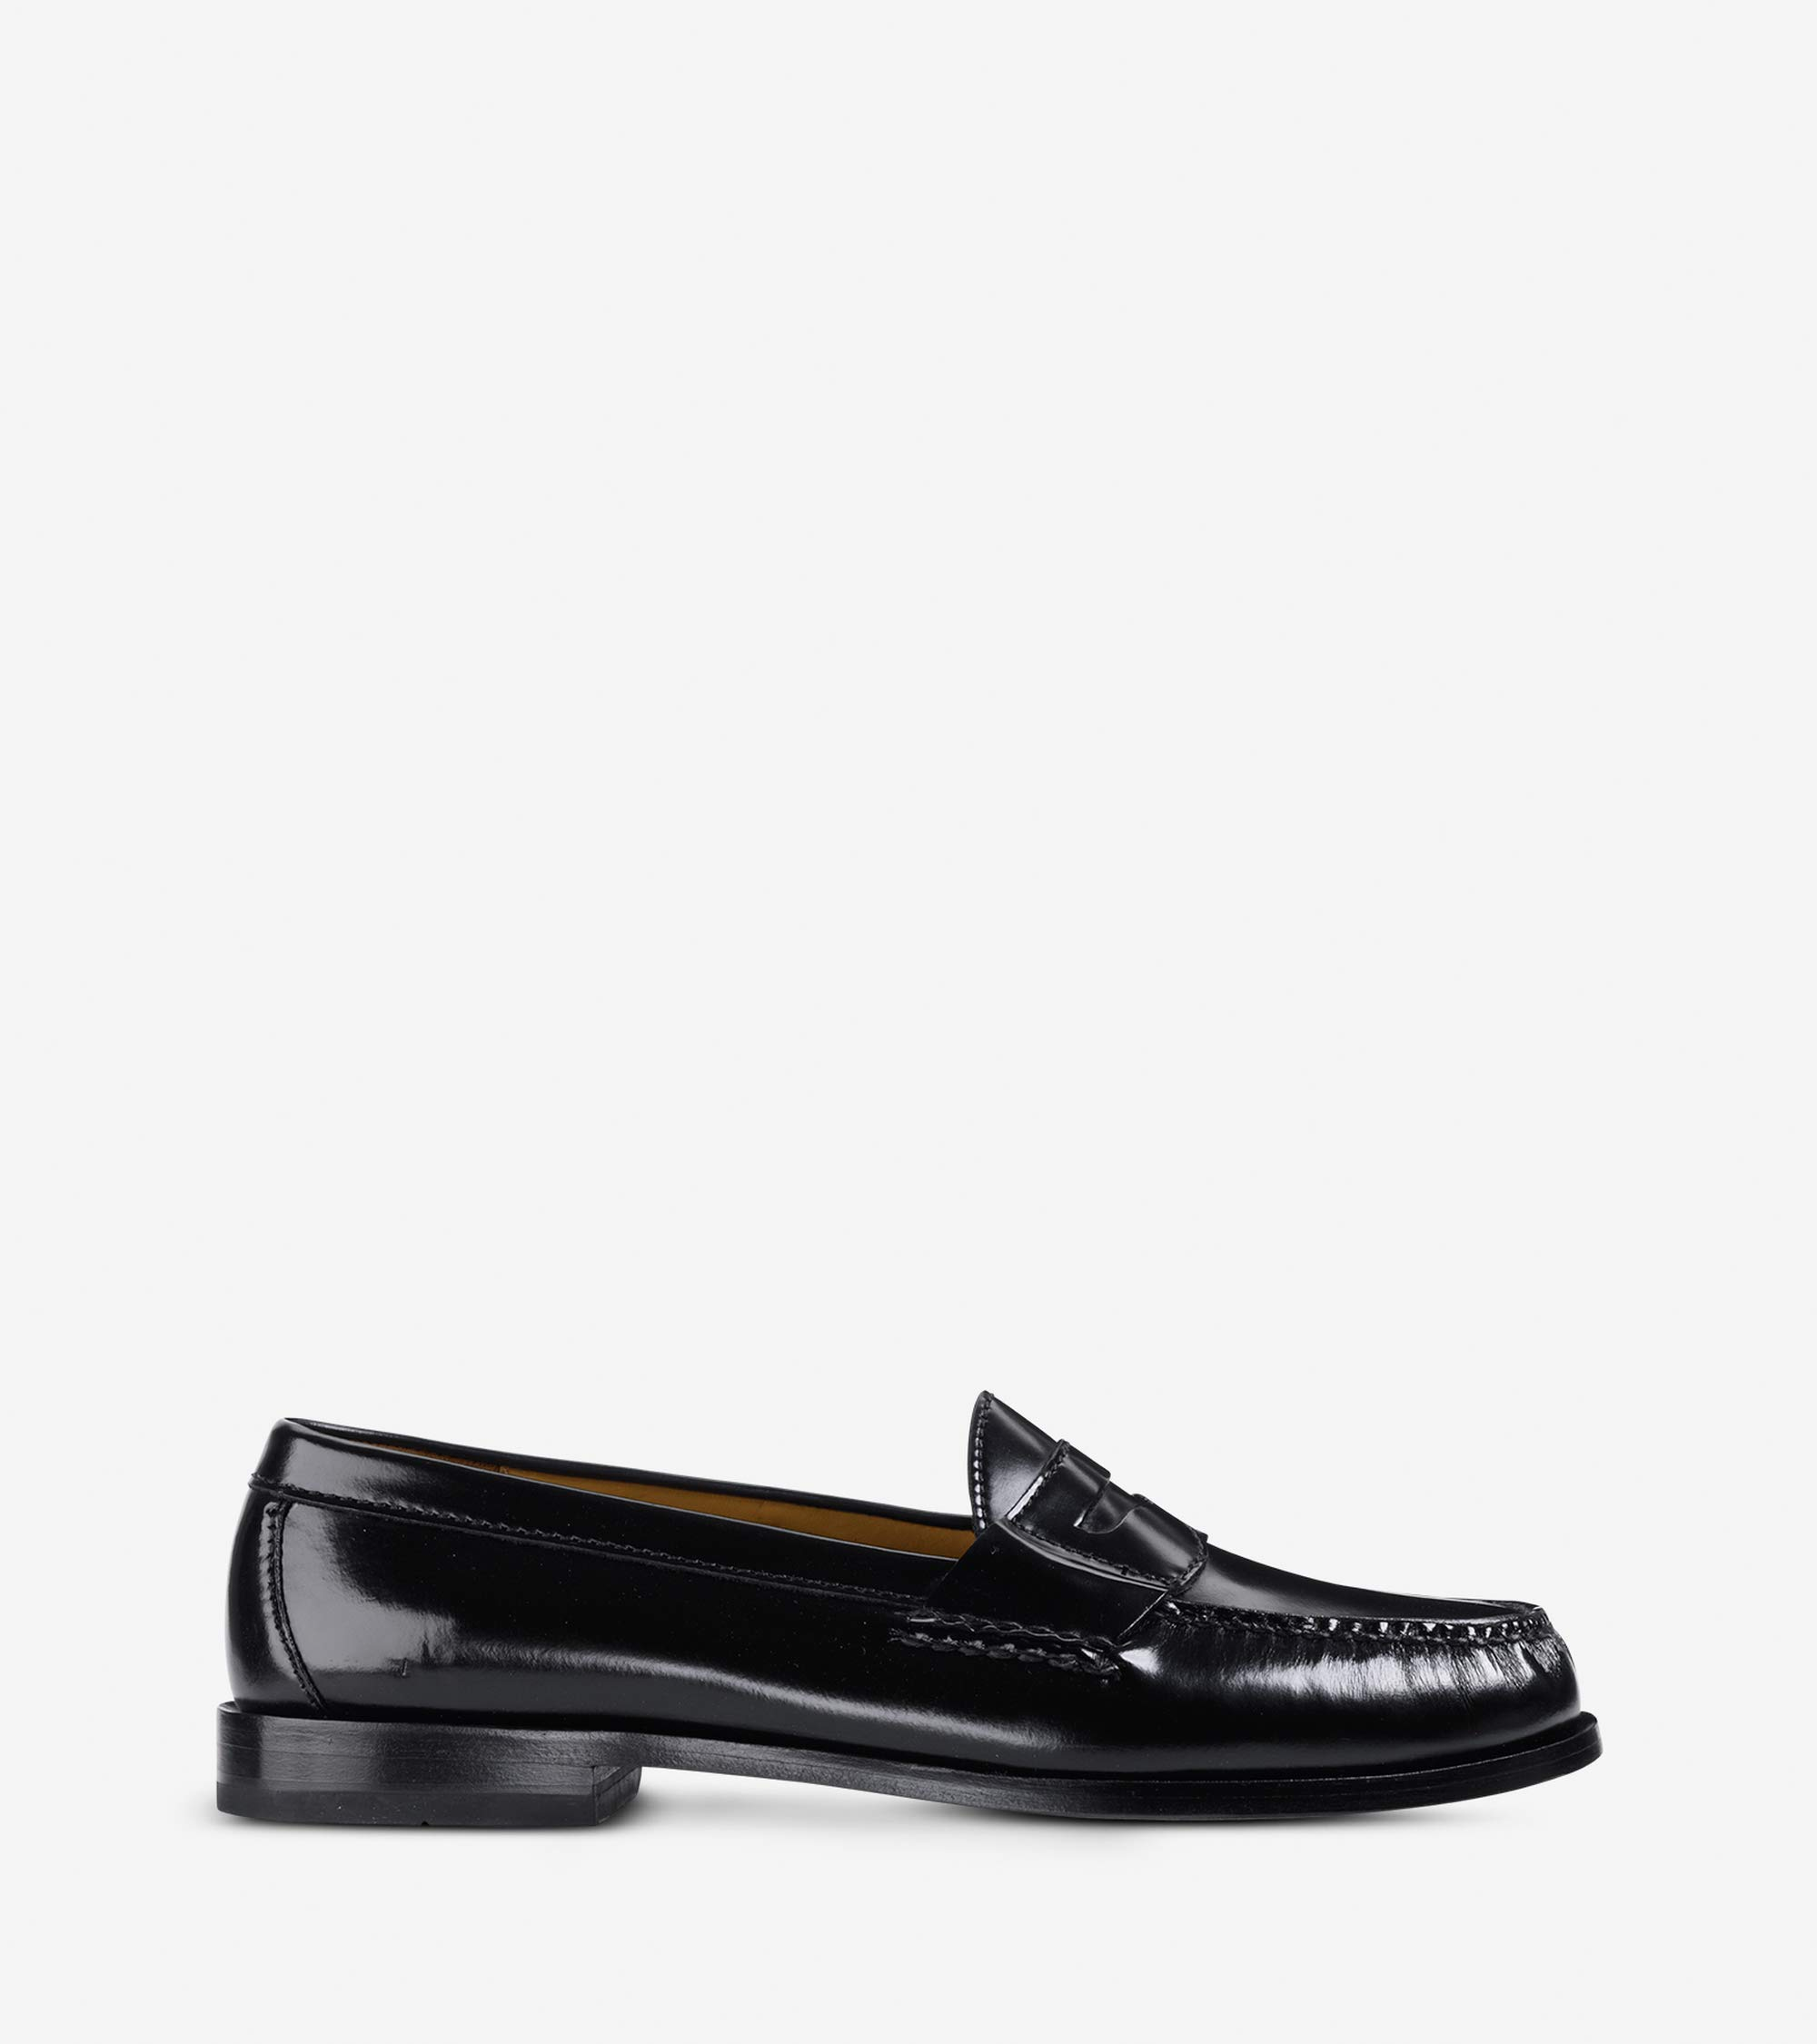 Cole Haan Men's Pinch Penny Loafer, Black, 8.5 D US